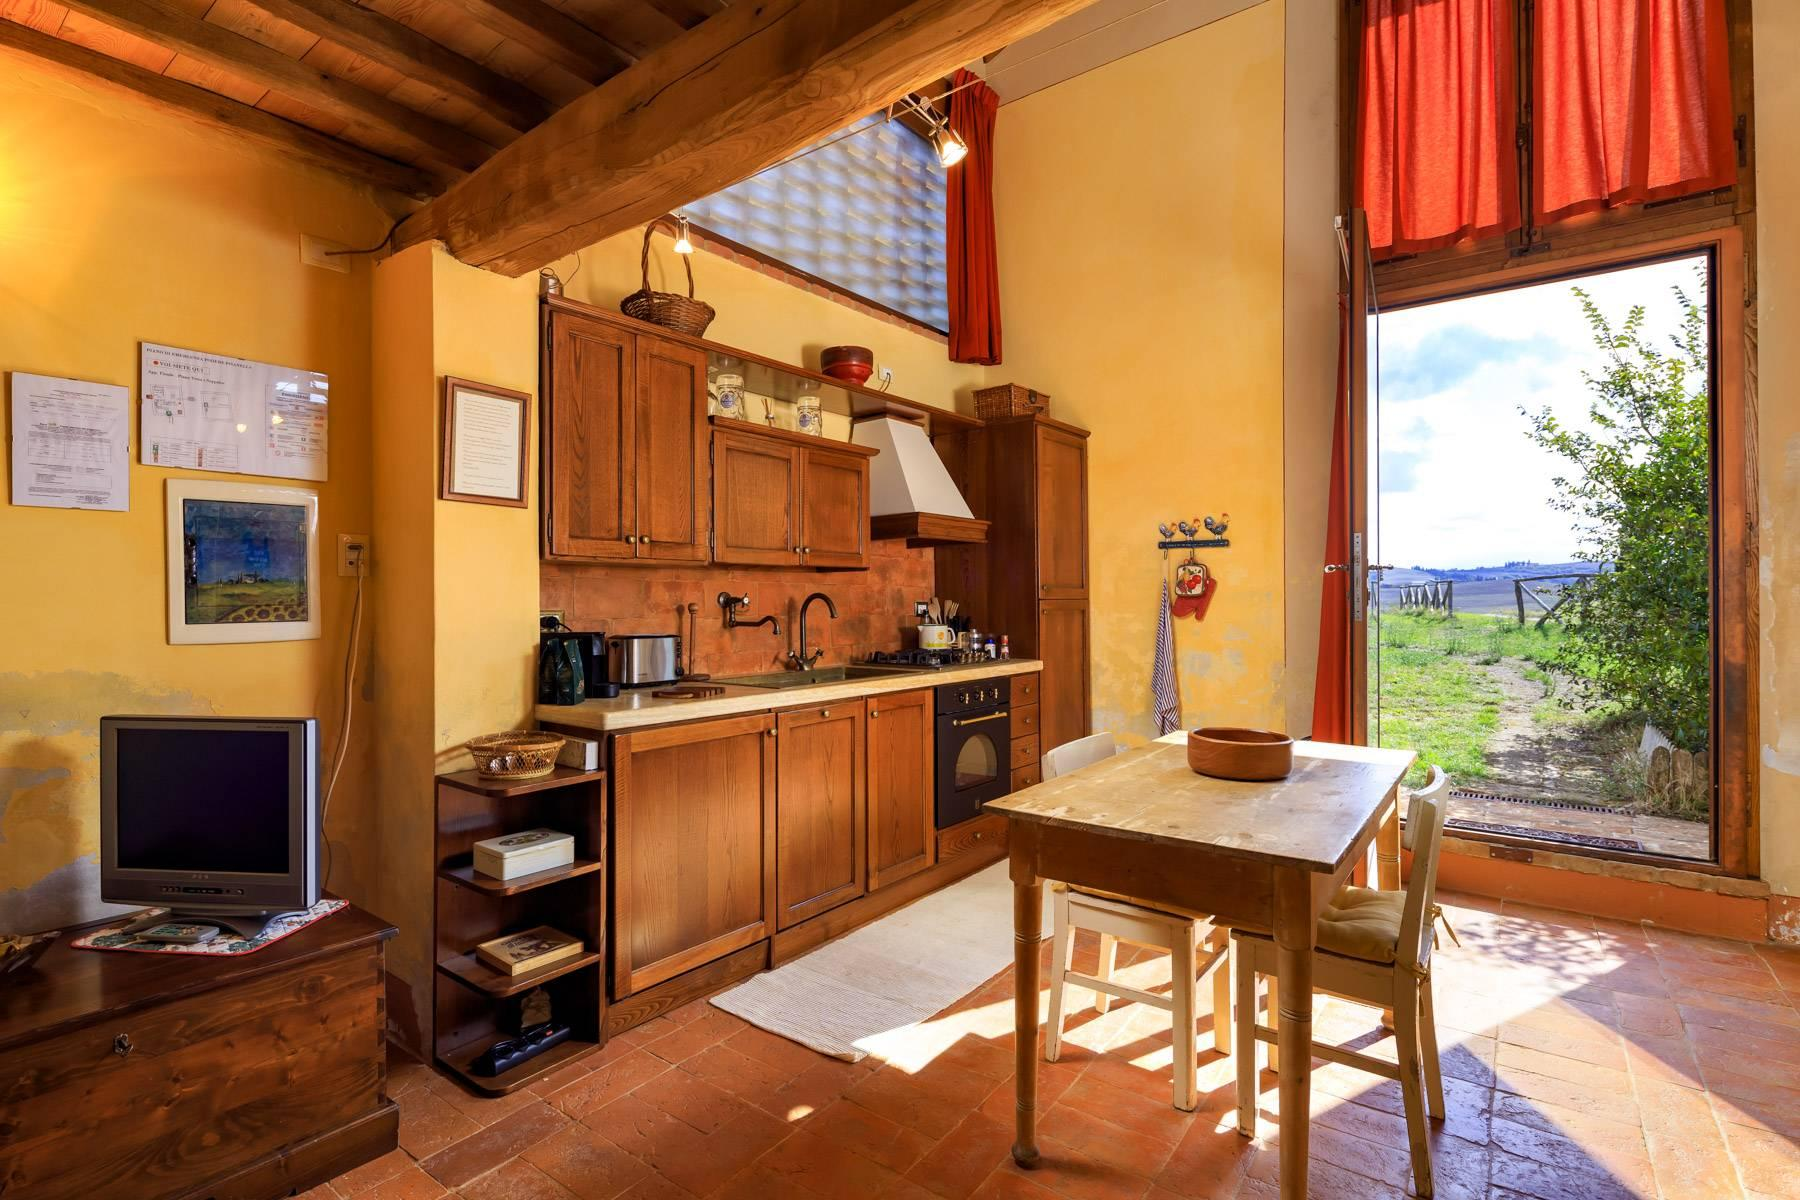 Wonderful tuscan countryhouse on the hills around Siena - 29